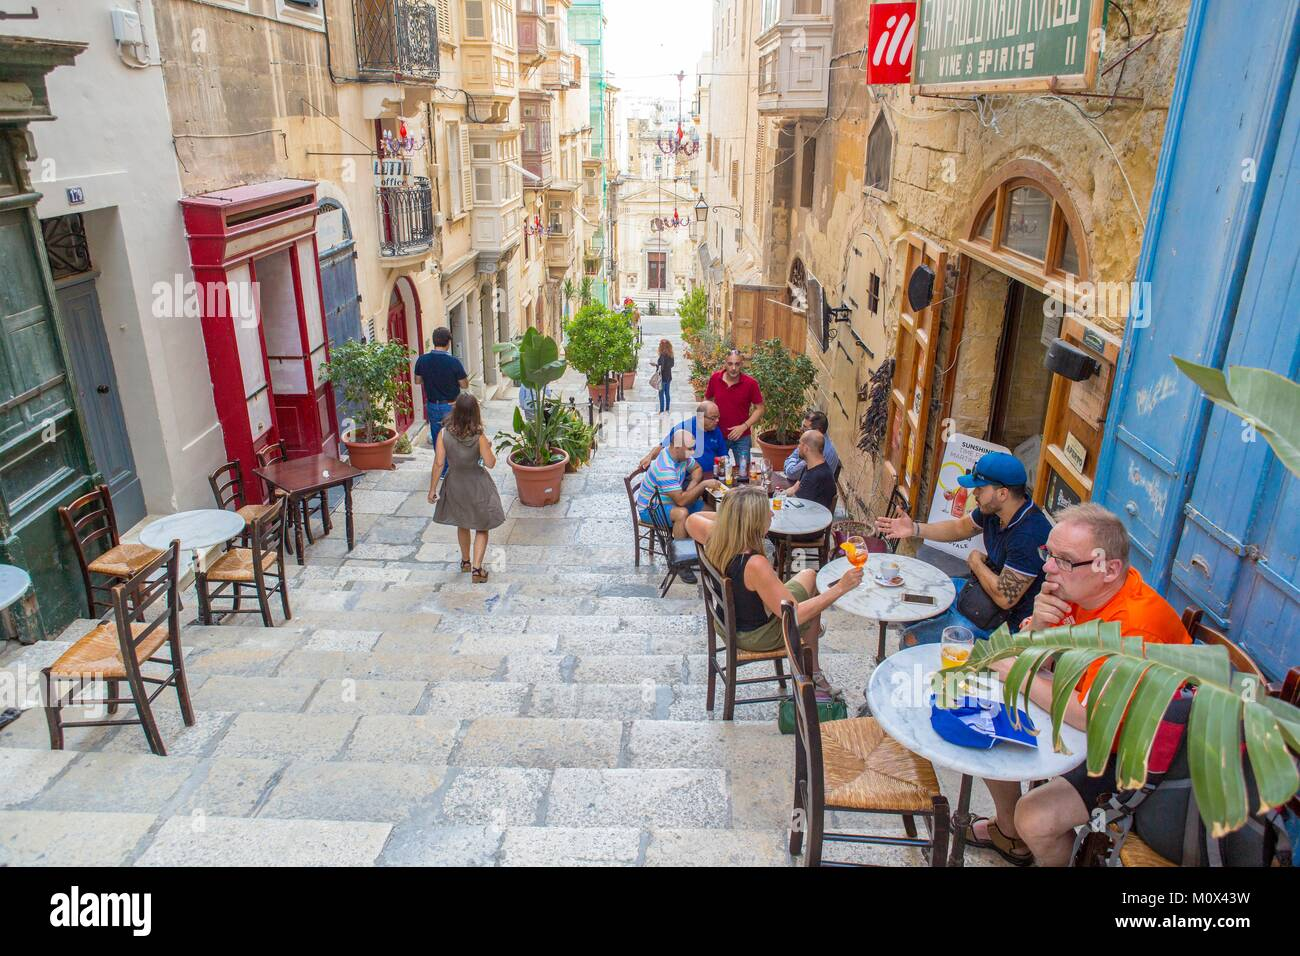 Malta,Valletta,city listed as World Heritage by UNESCO,downtown cafe - Stock Image